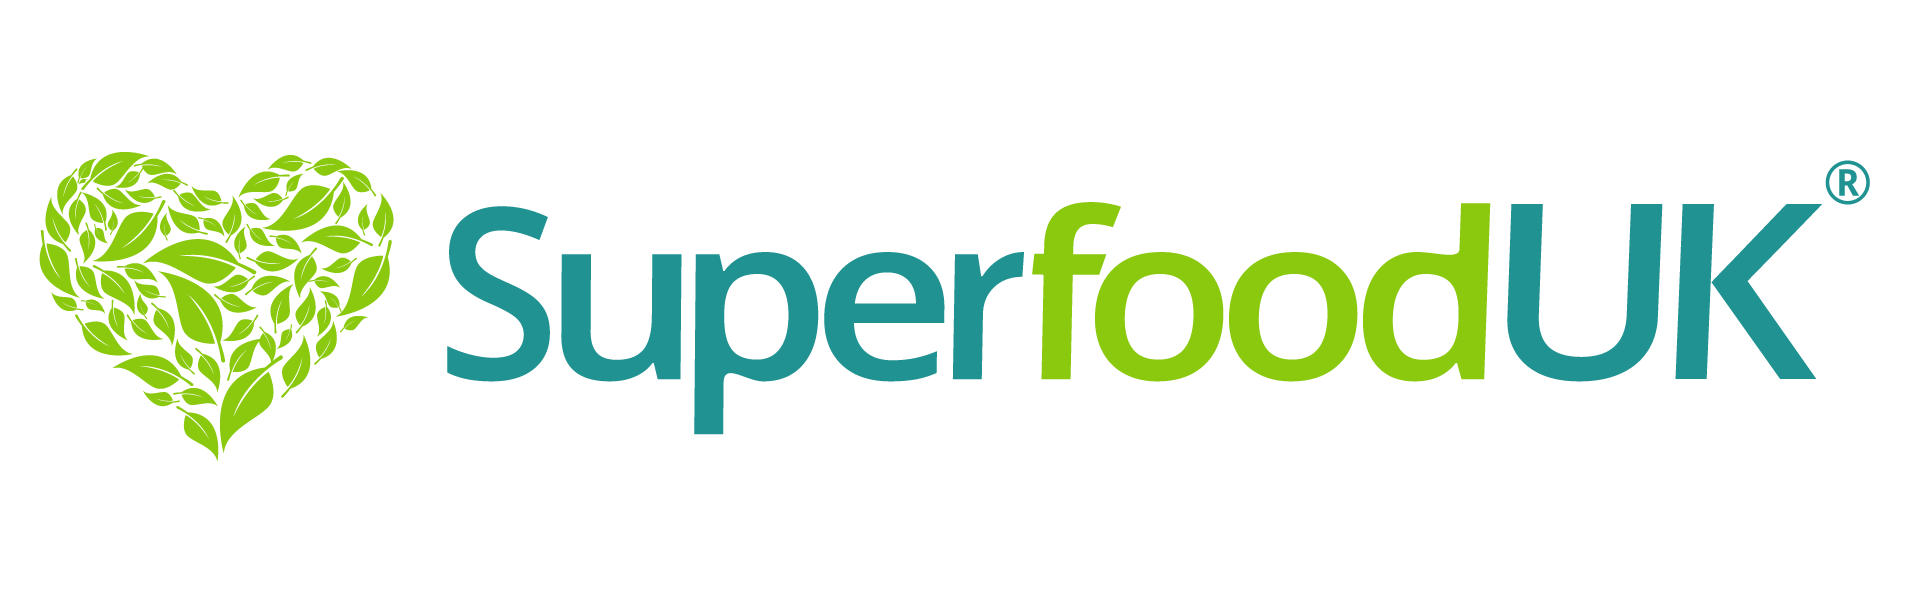 Read Superfooduk Reviews